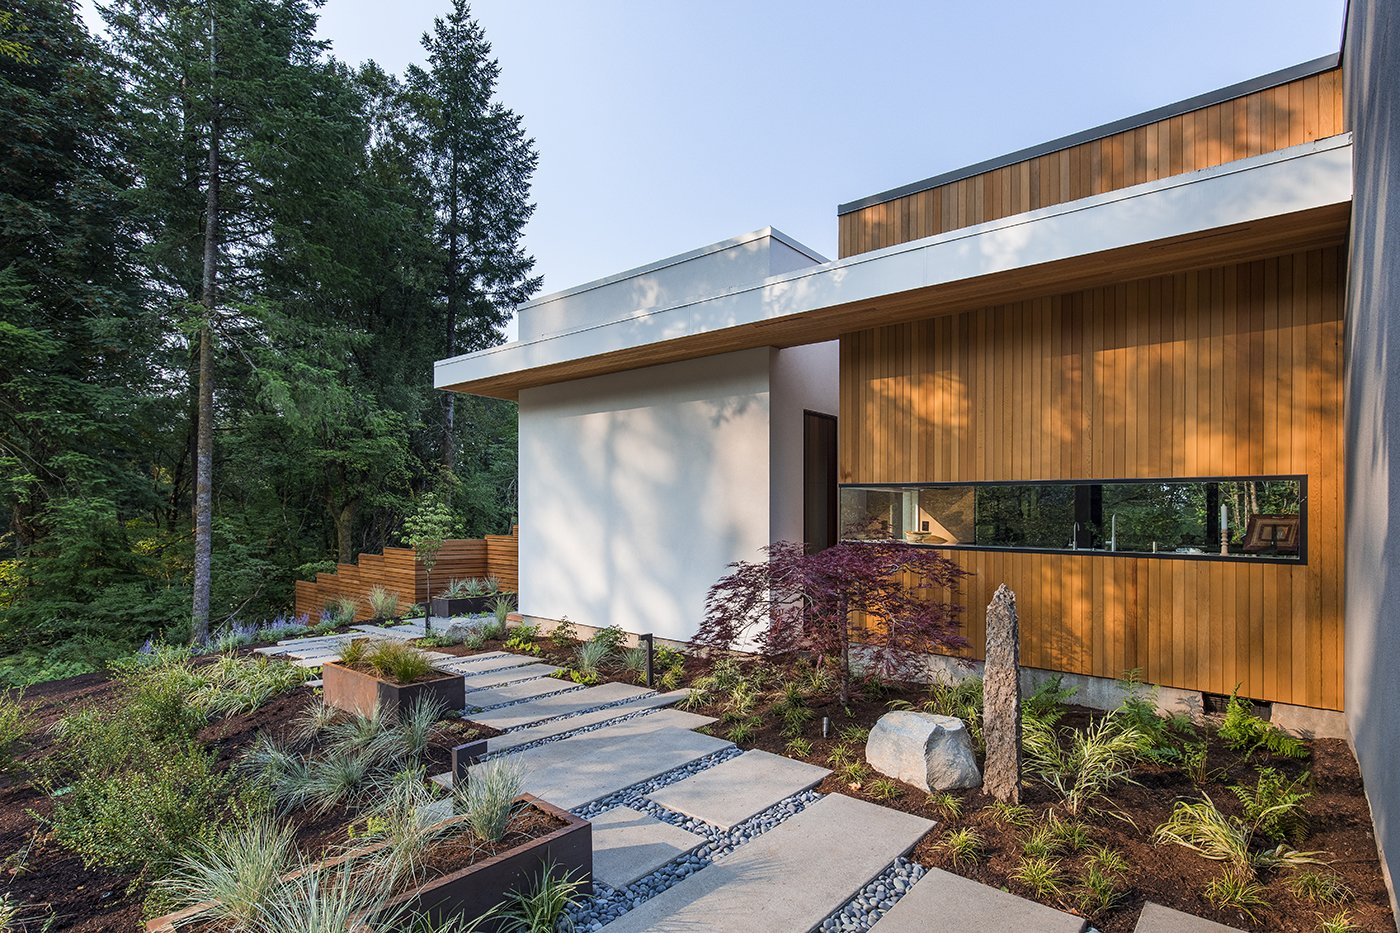 Exterior, Stucco Siding Material, Flat RoofLine, Wood Siding Material, and House Building Type  Wildwood by Giulietti / Schouten AIA Architects